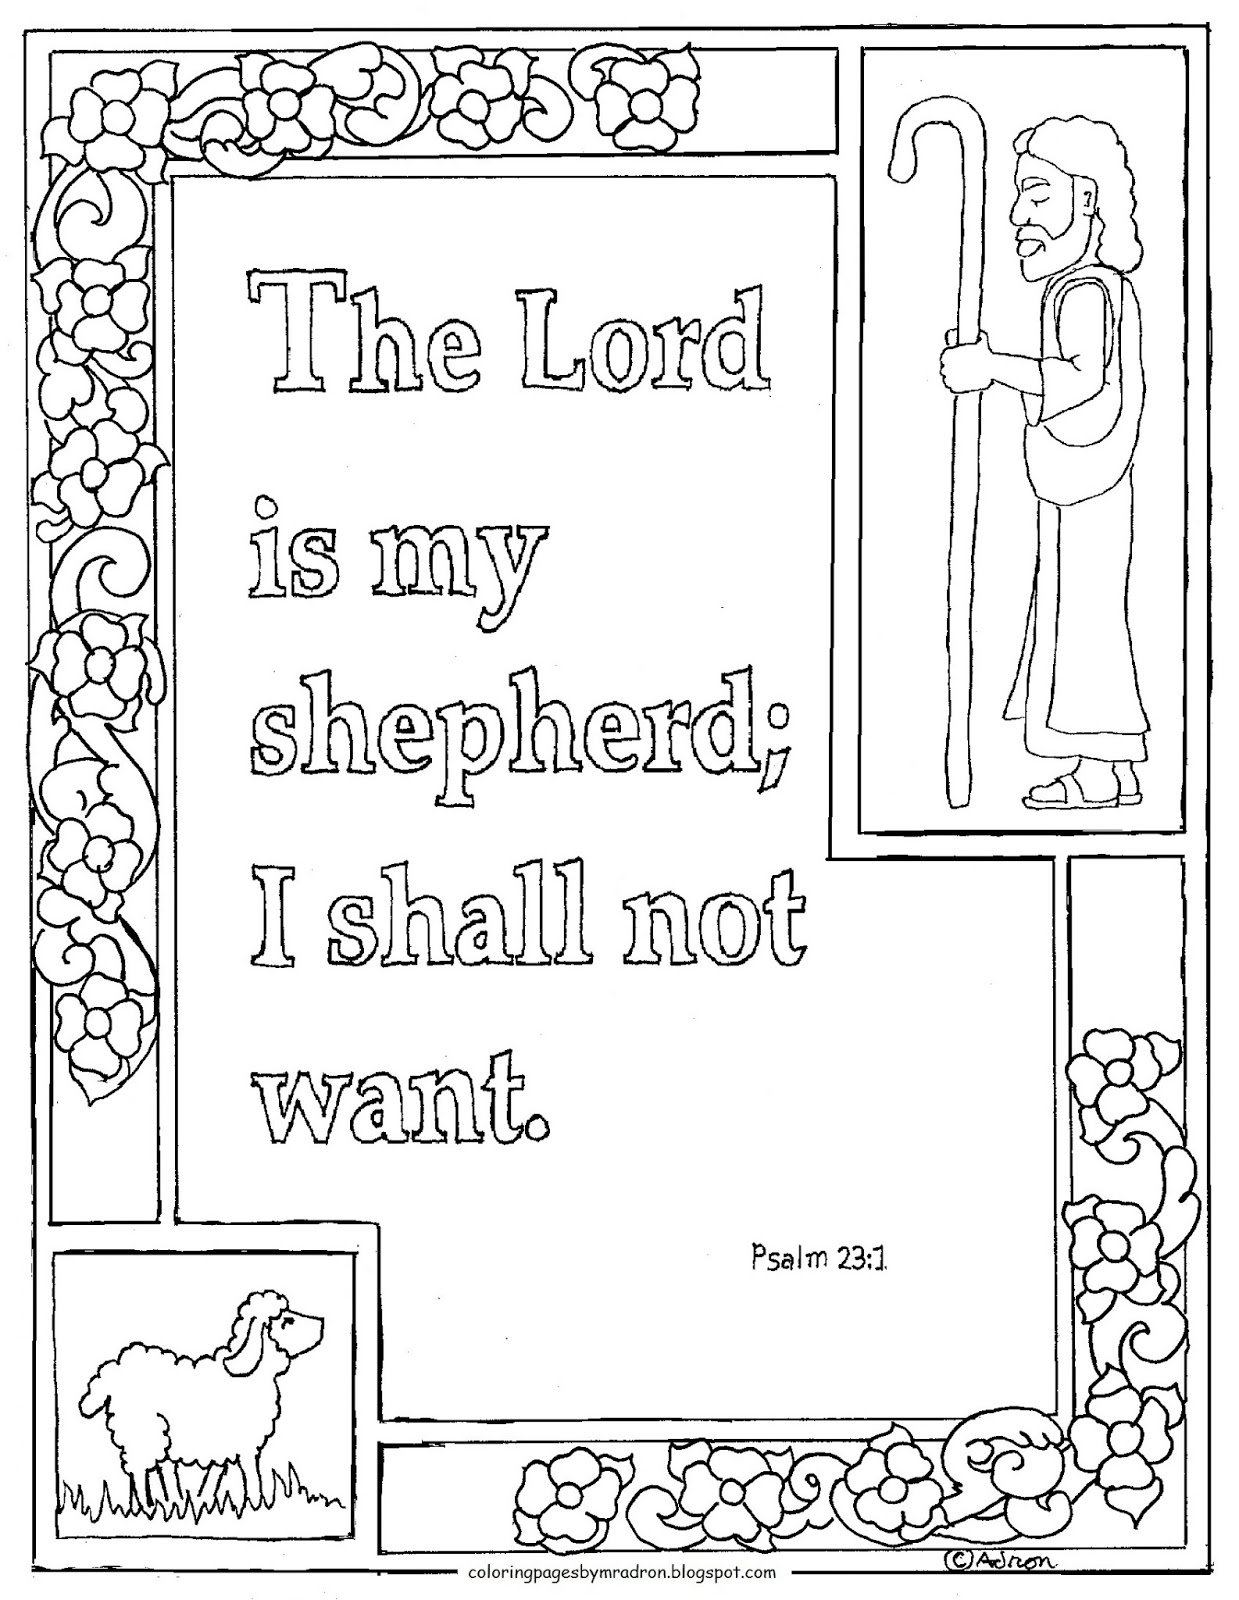 image regarding Psalm 23 Printable identify 21 Psalm 23 Coloring Site Photos Cost-free COLORING Internet pages